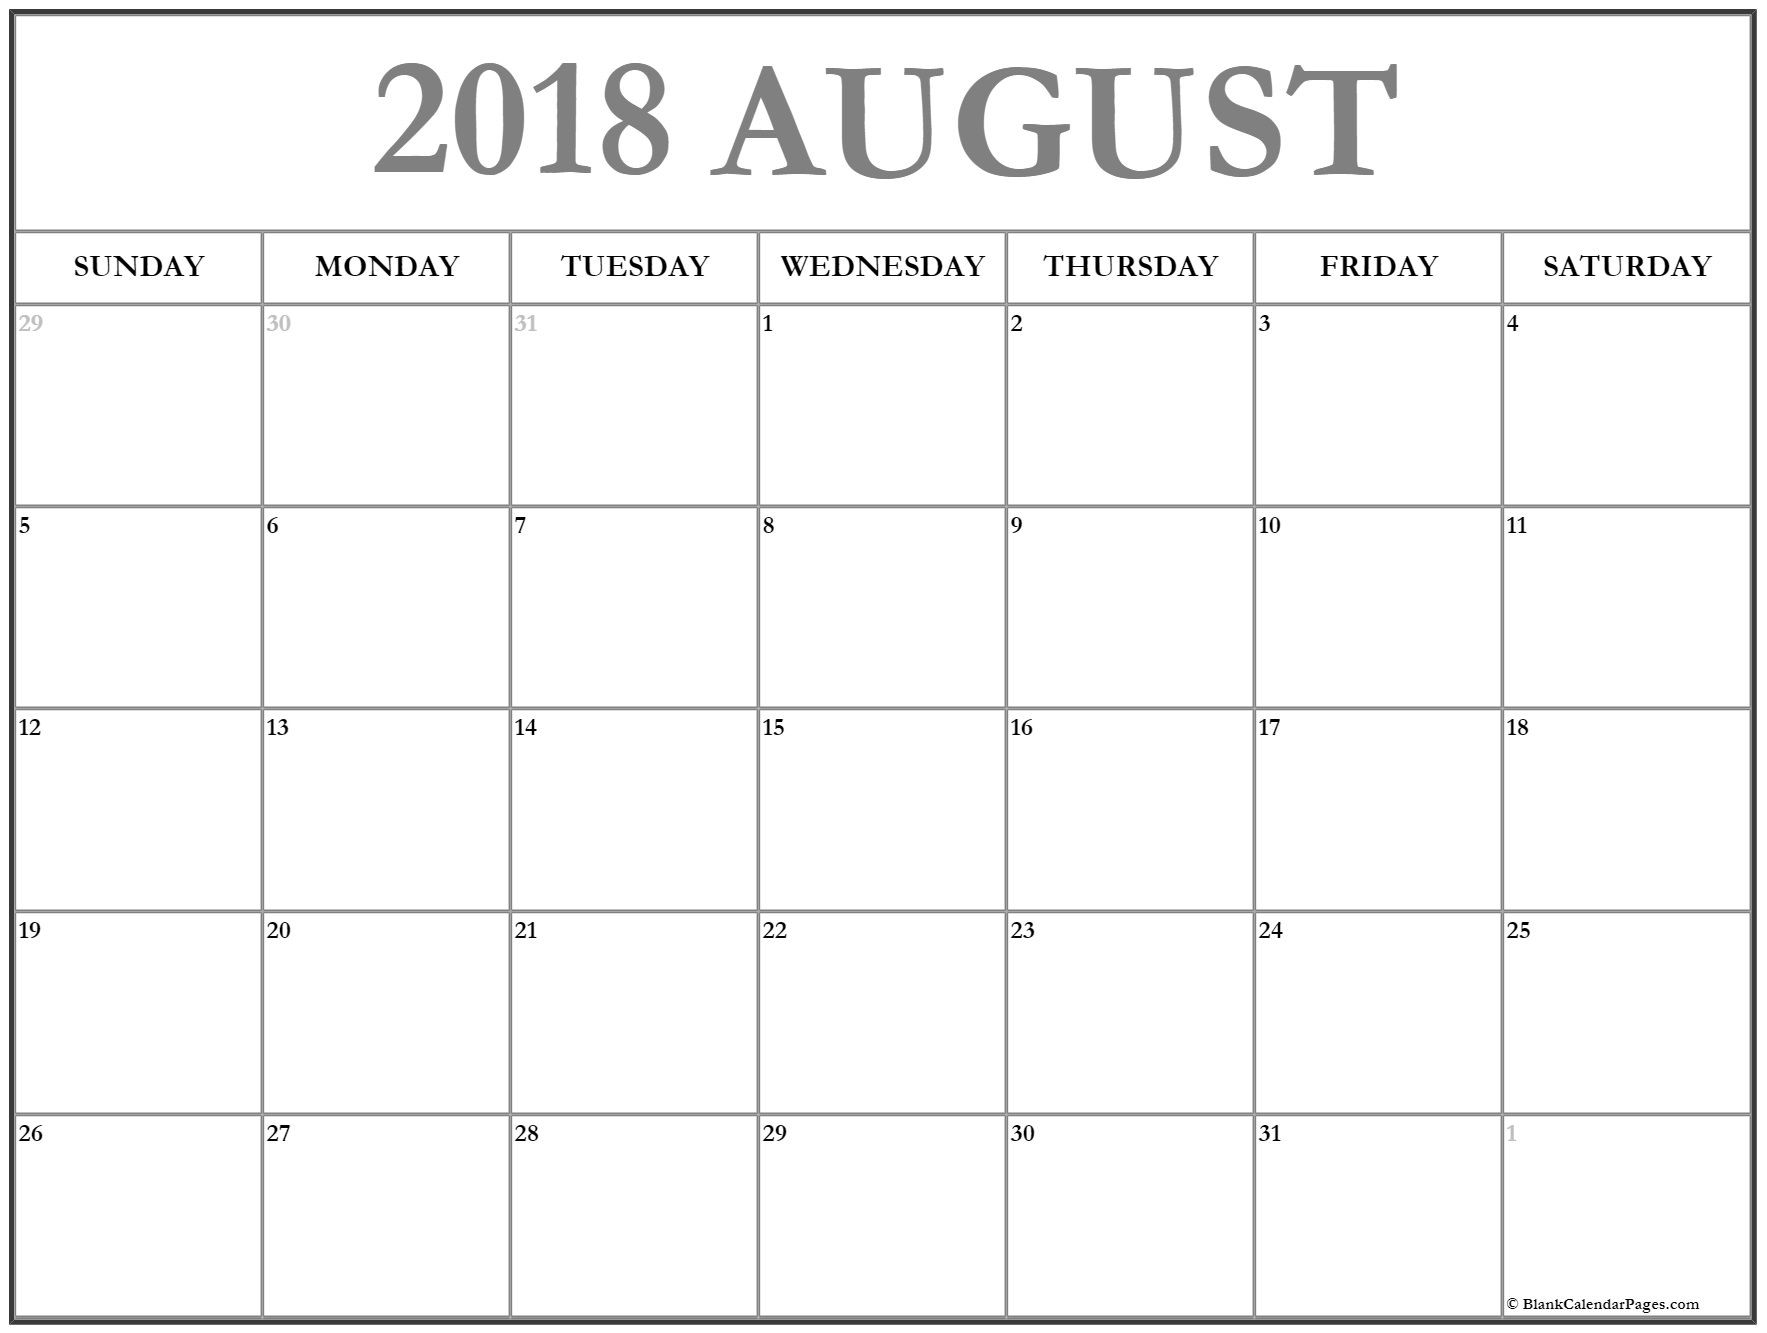 august 2018 calendar 51 calendar templates of 2018 calendars Blank Calendar Of August 2018 Full Page erdferdf